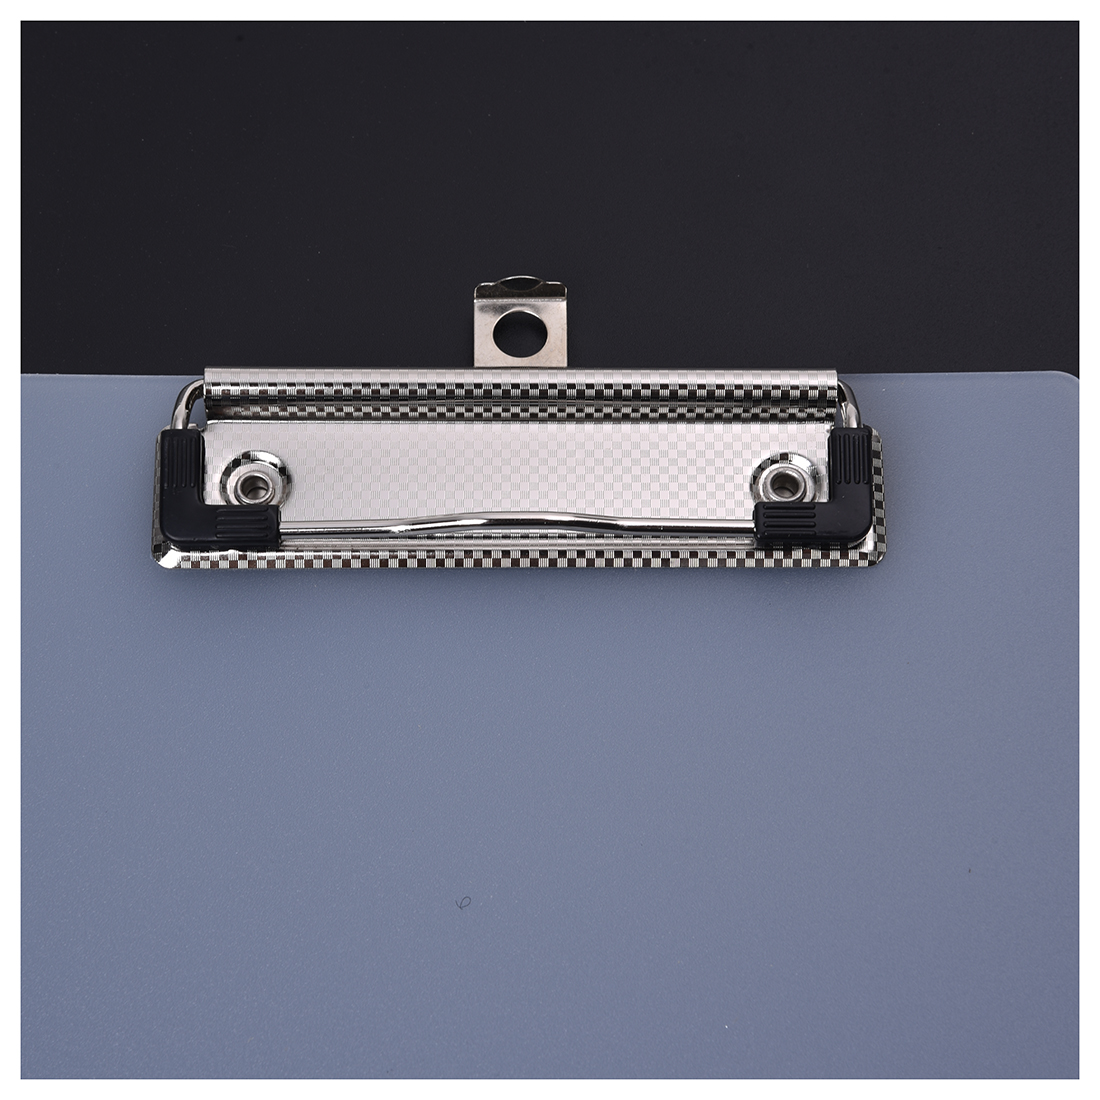 PPYY NEW -Clipboard Plate Door Translucent Block Clip For Paper A5 Office